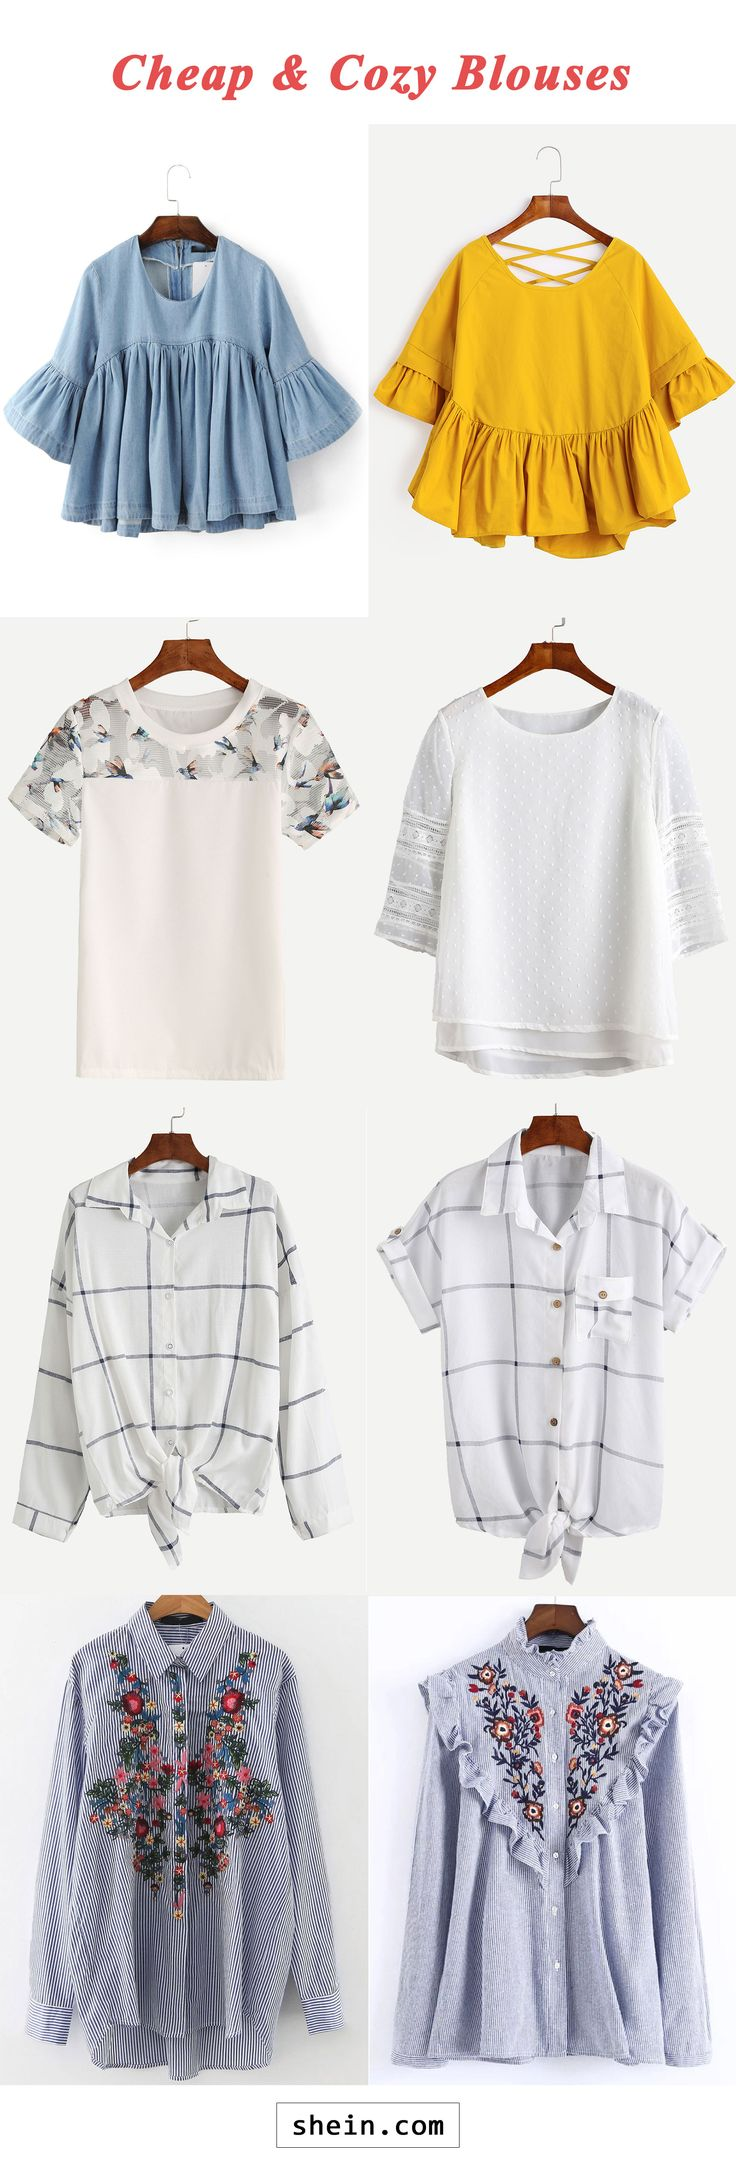 Comfy blouses start at $7!